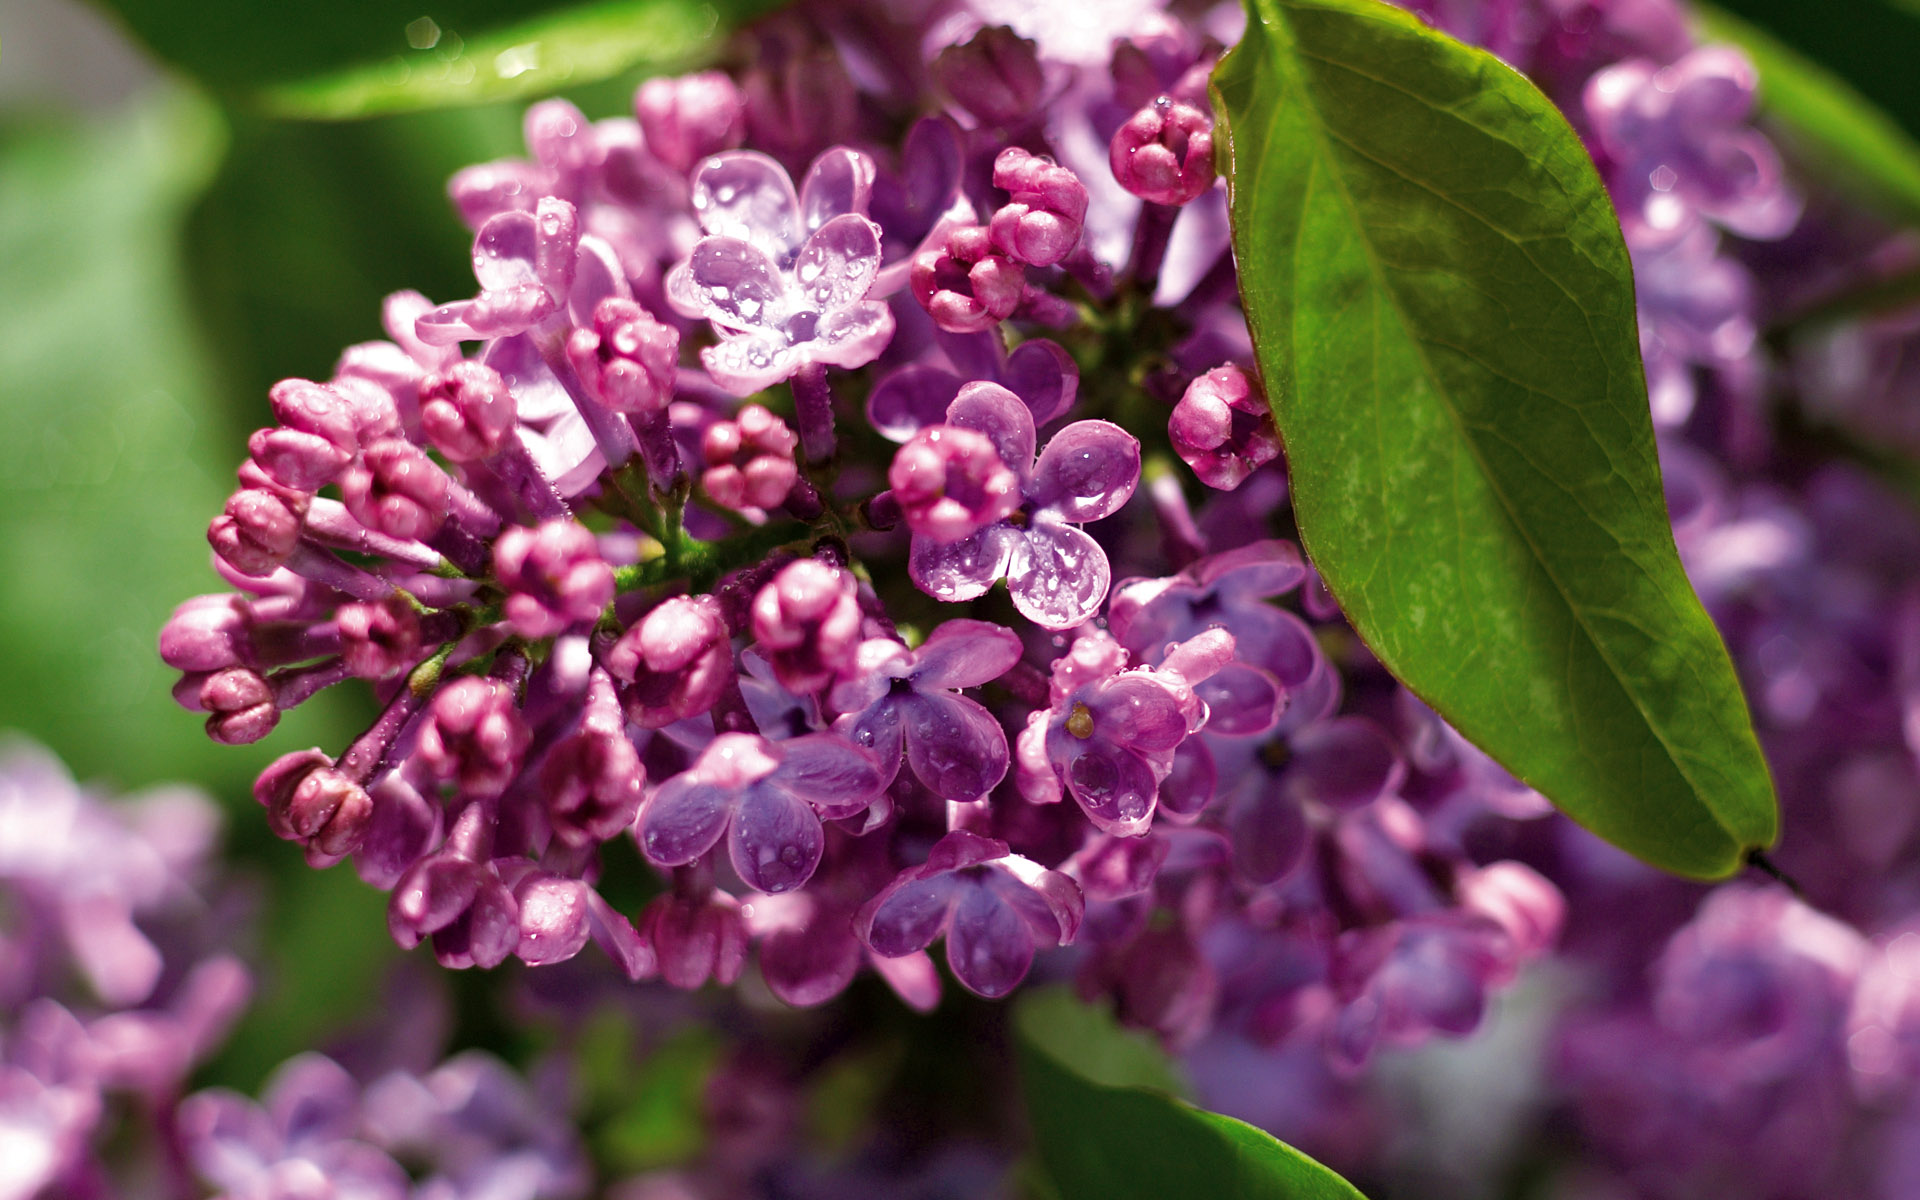 lilac flowers A2